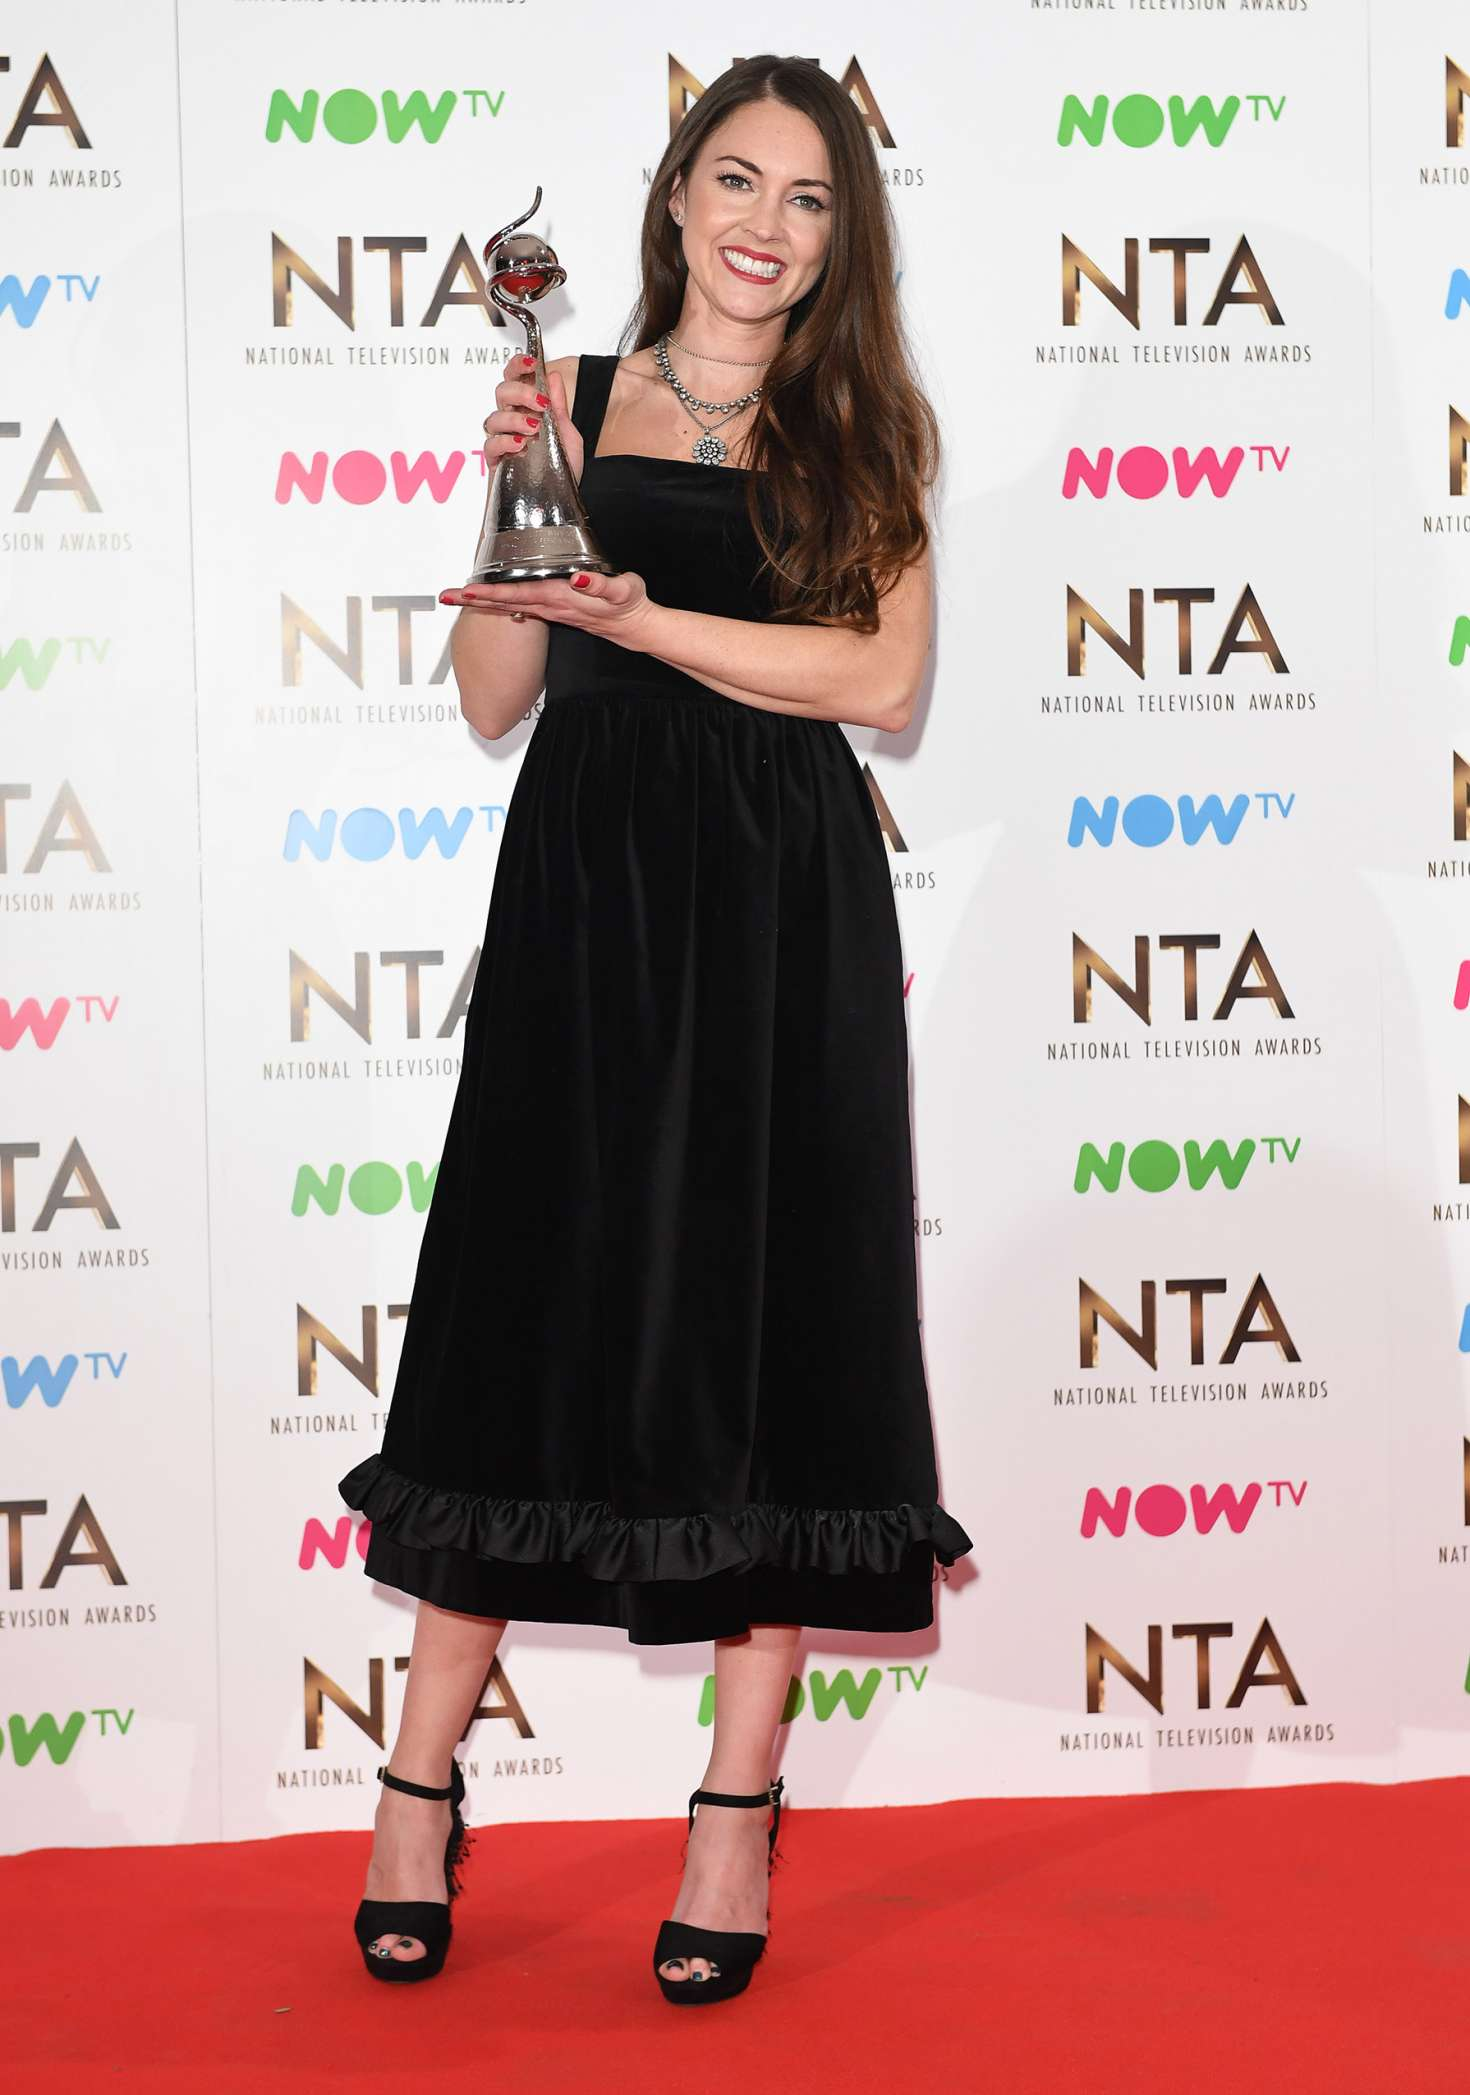 Lacey Turner 2017 : Lacey Turner: 2017 National Television Awards -03